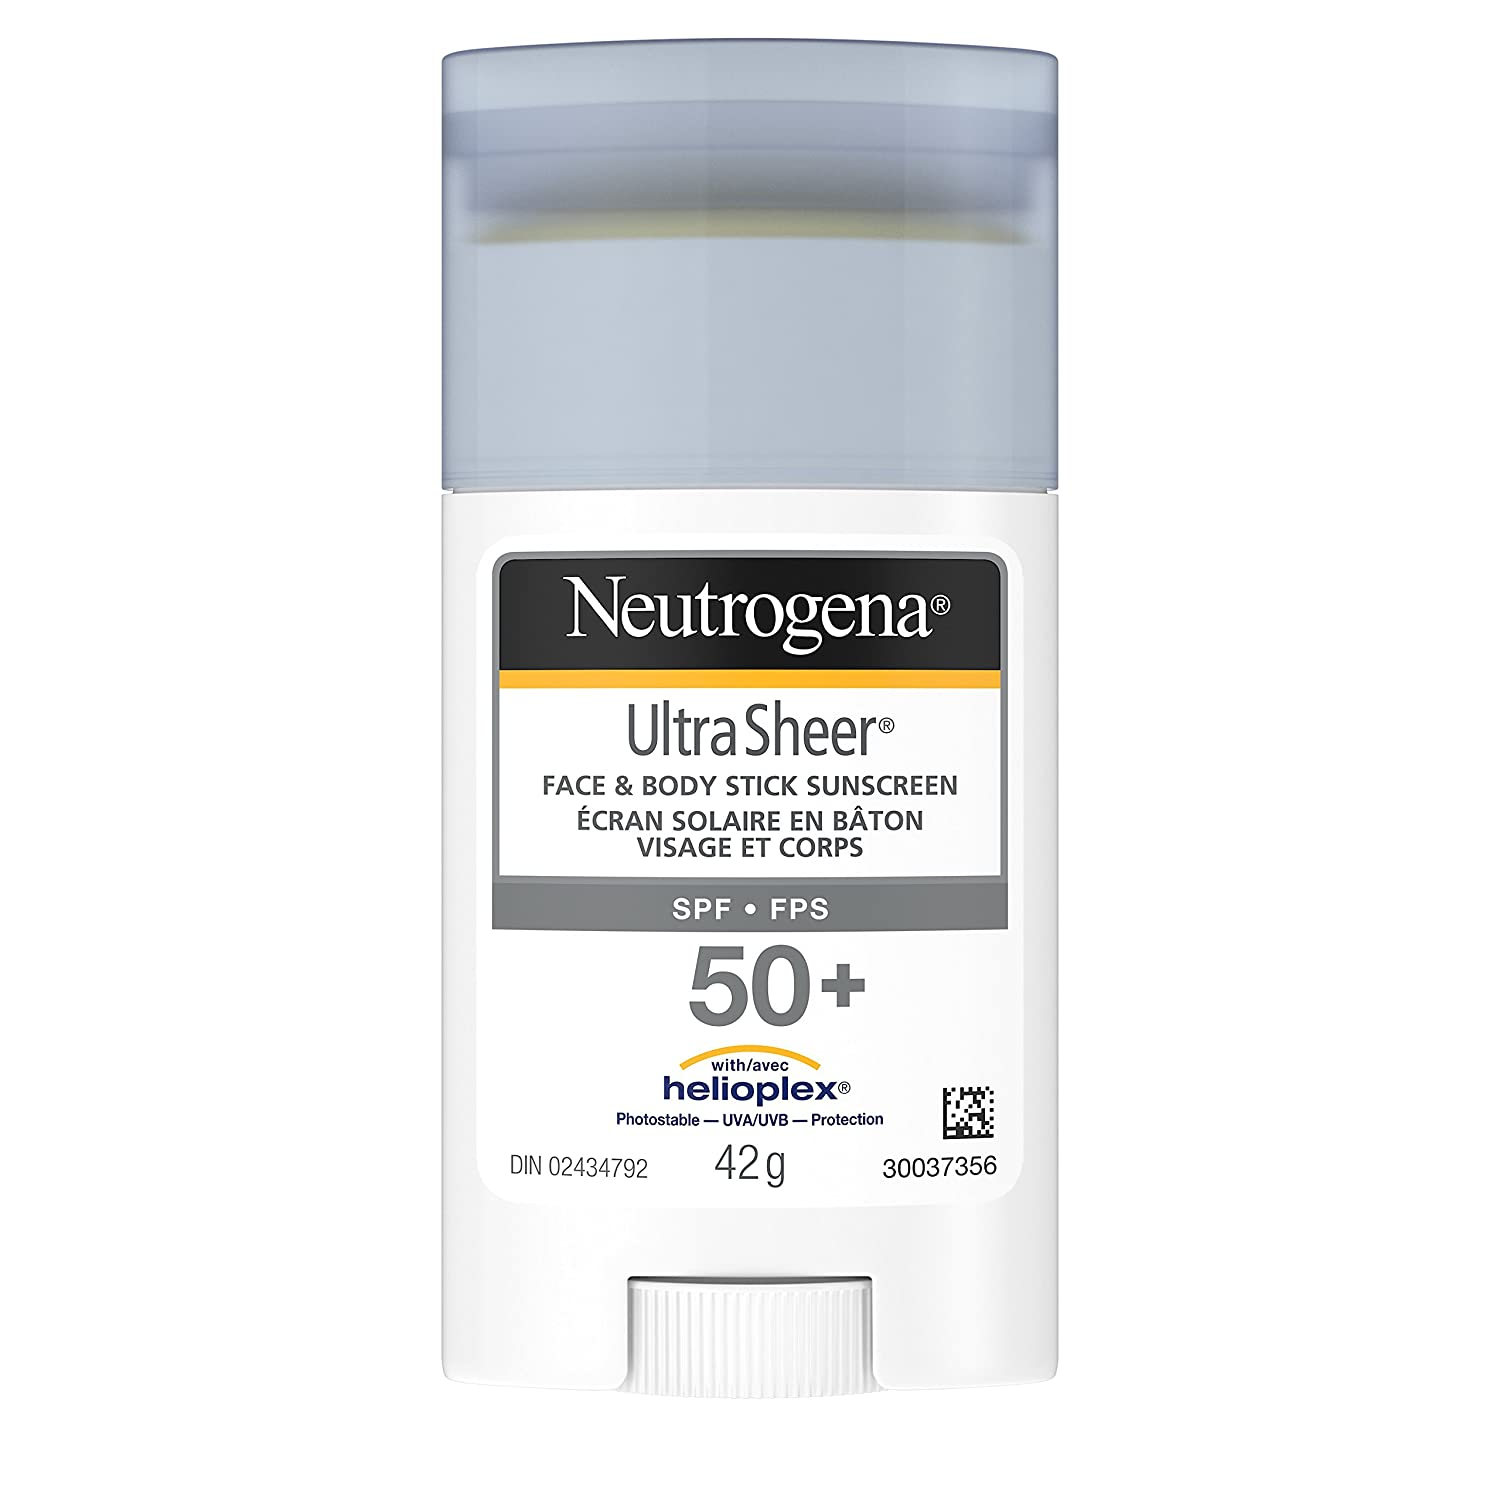 Neutrogena Sunscreen Stick SPF 50+, Ultra Sheer Water Resistant Sun Protection Stick for Face and Body, 42g Johnson and Johnson CA